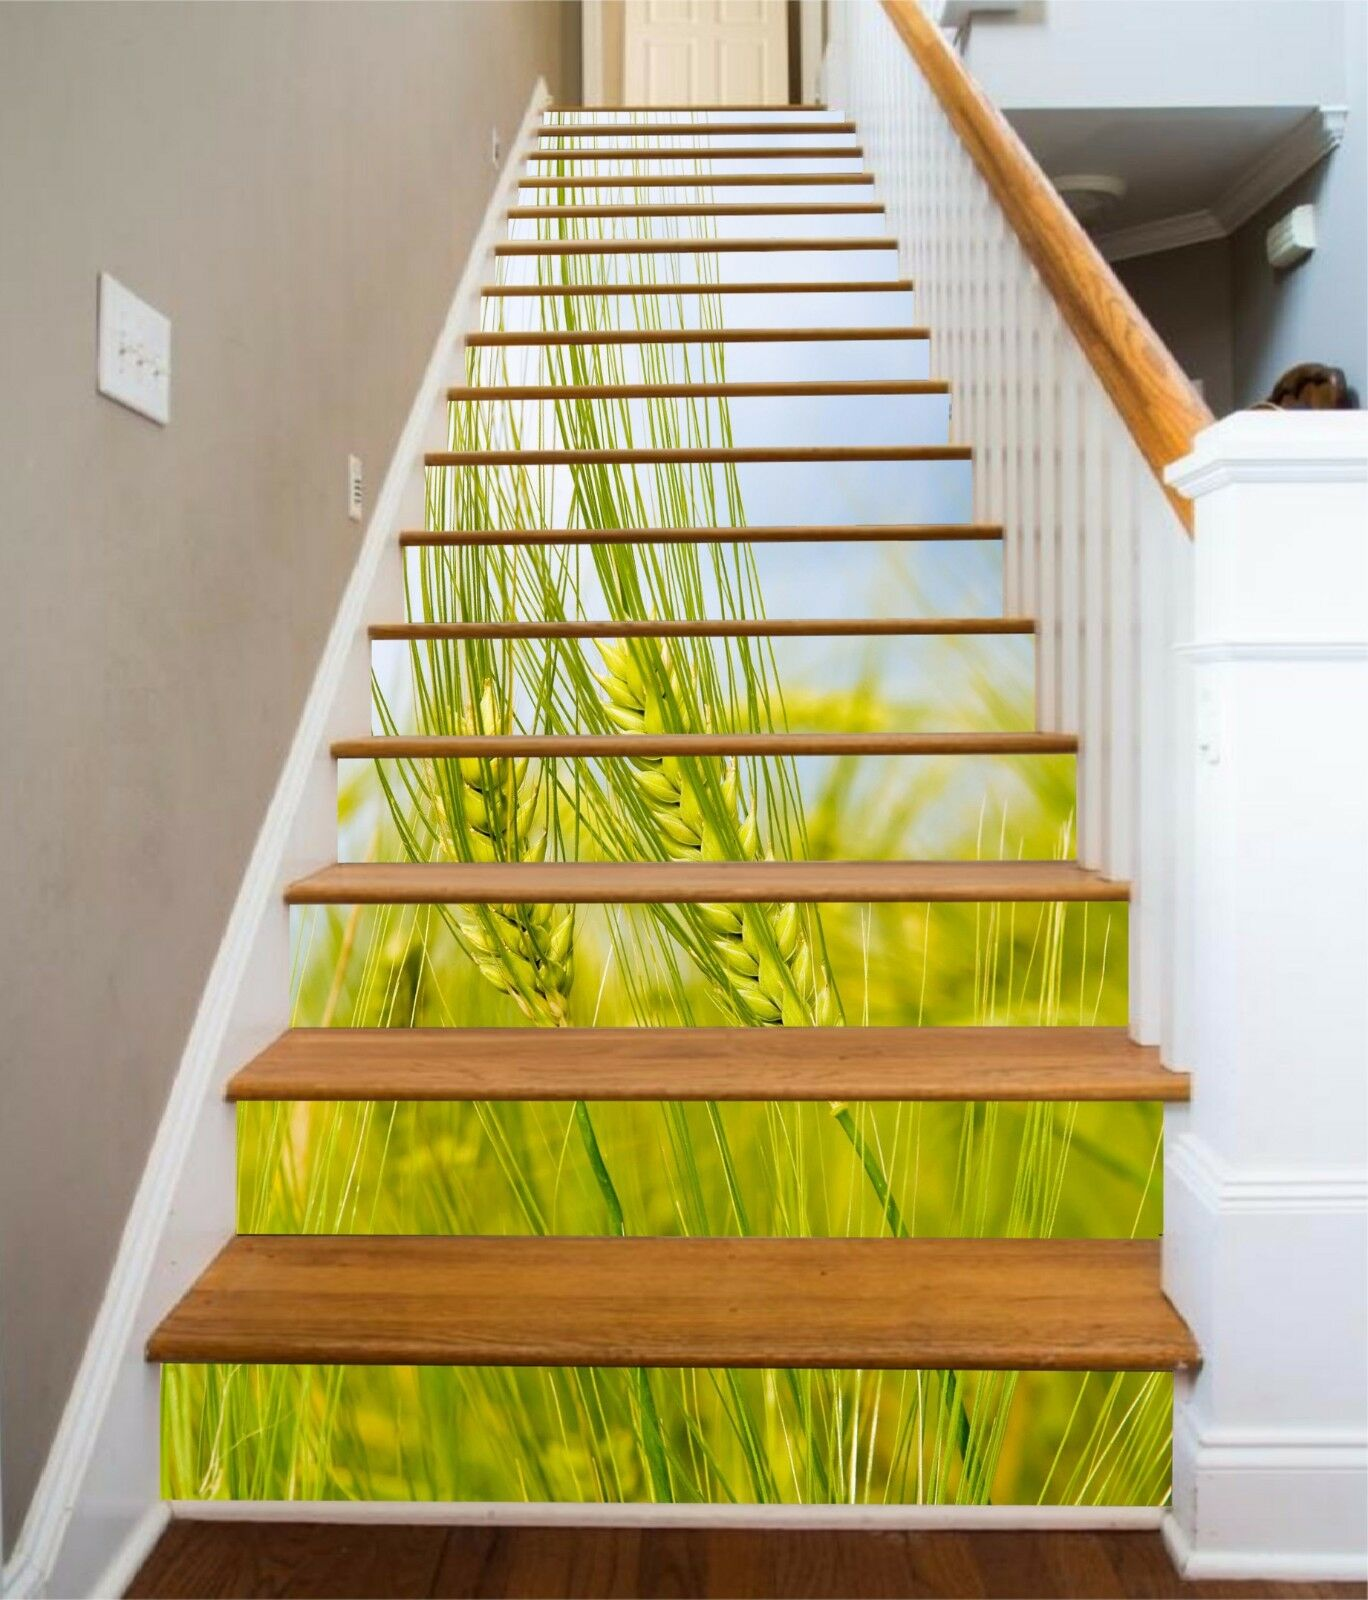 3D Wheat Field 104 Stairs Risers Decoration Photo Mural Vinyl Decal Wallpaper US